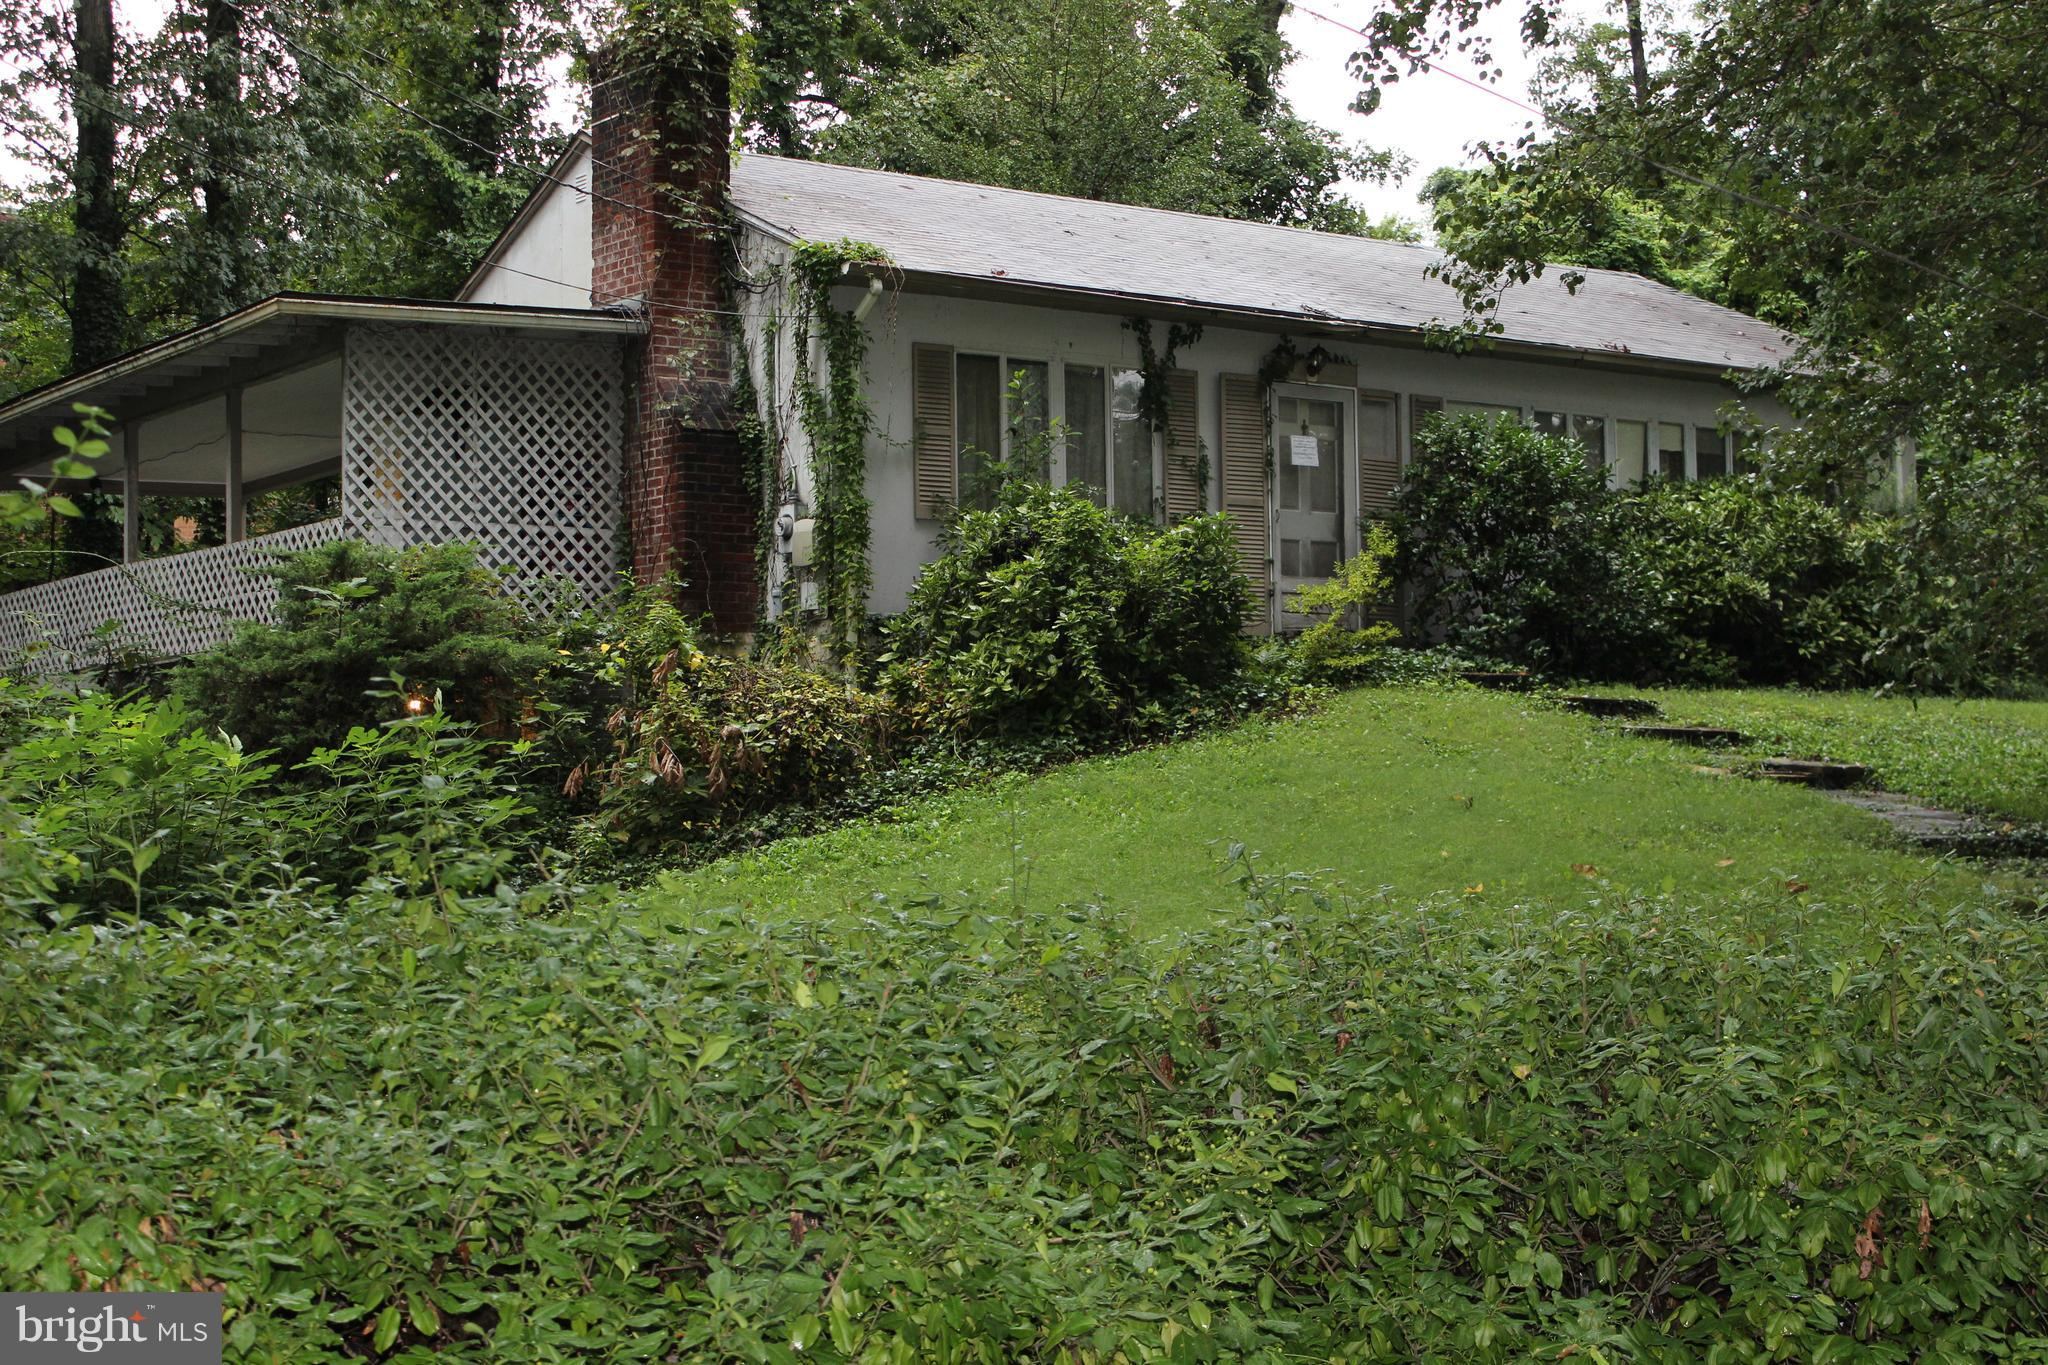 Location Location Location!!! GREAT INVESTOR DEAL! House is a Fixer Upper/Tear Down. About $100K in equity in this move-in condition, property in sort after area, Cul-De-Sac neighborhood. Nested among $800K homes. Comps in $600K range. Family room w/Fire place. Easy commute to DC. Property being sold completely *As-Is, Where-Is* Listing shown by appointment only.